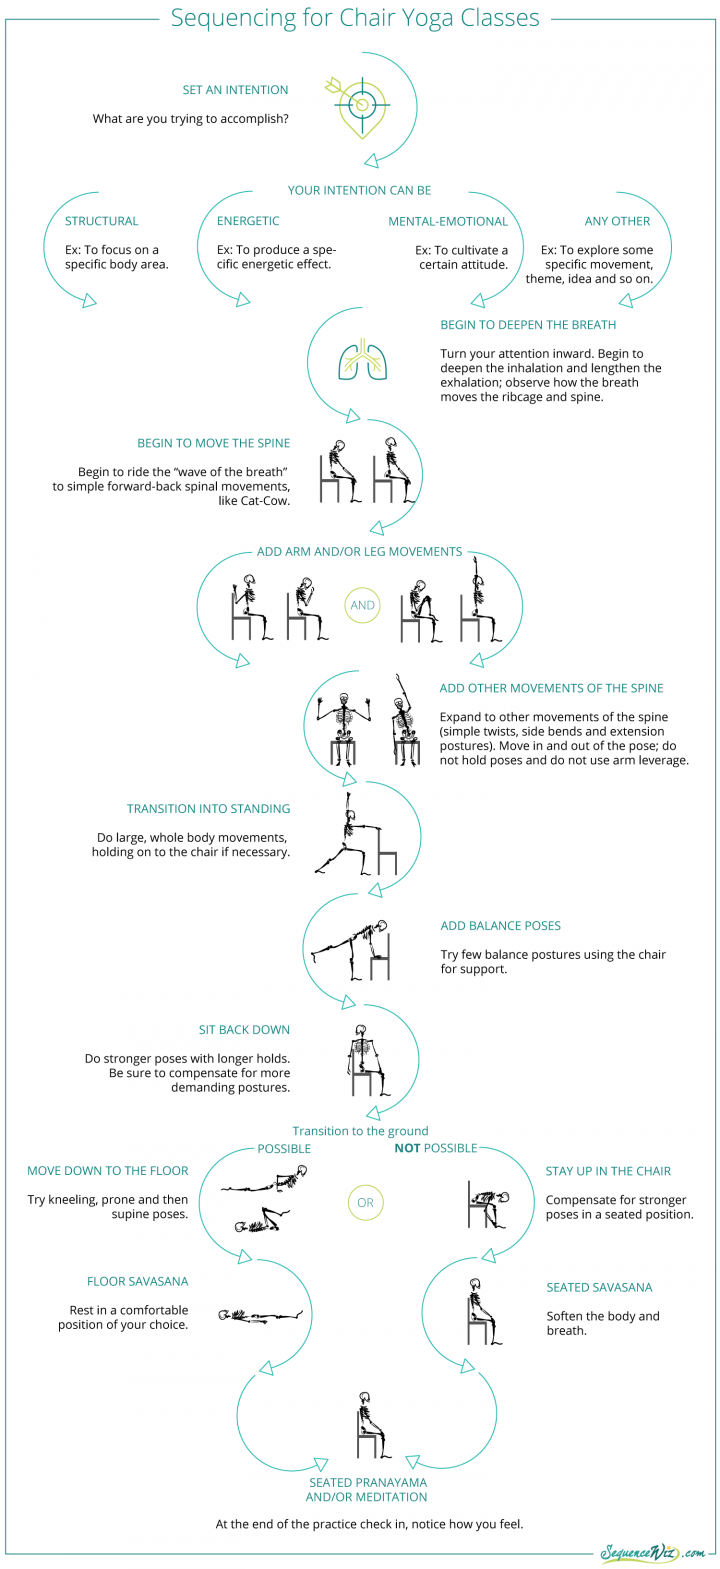 Diagram showing how to sequence chair yoga class